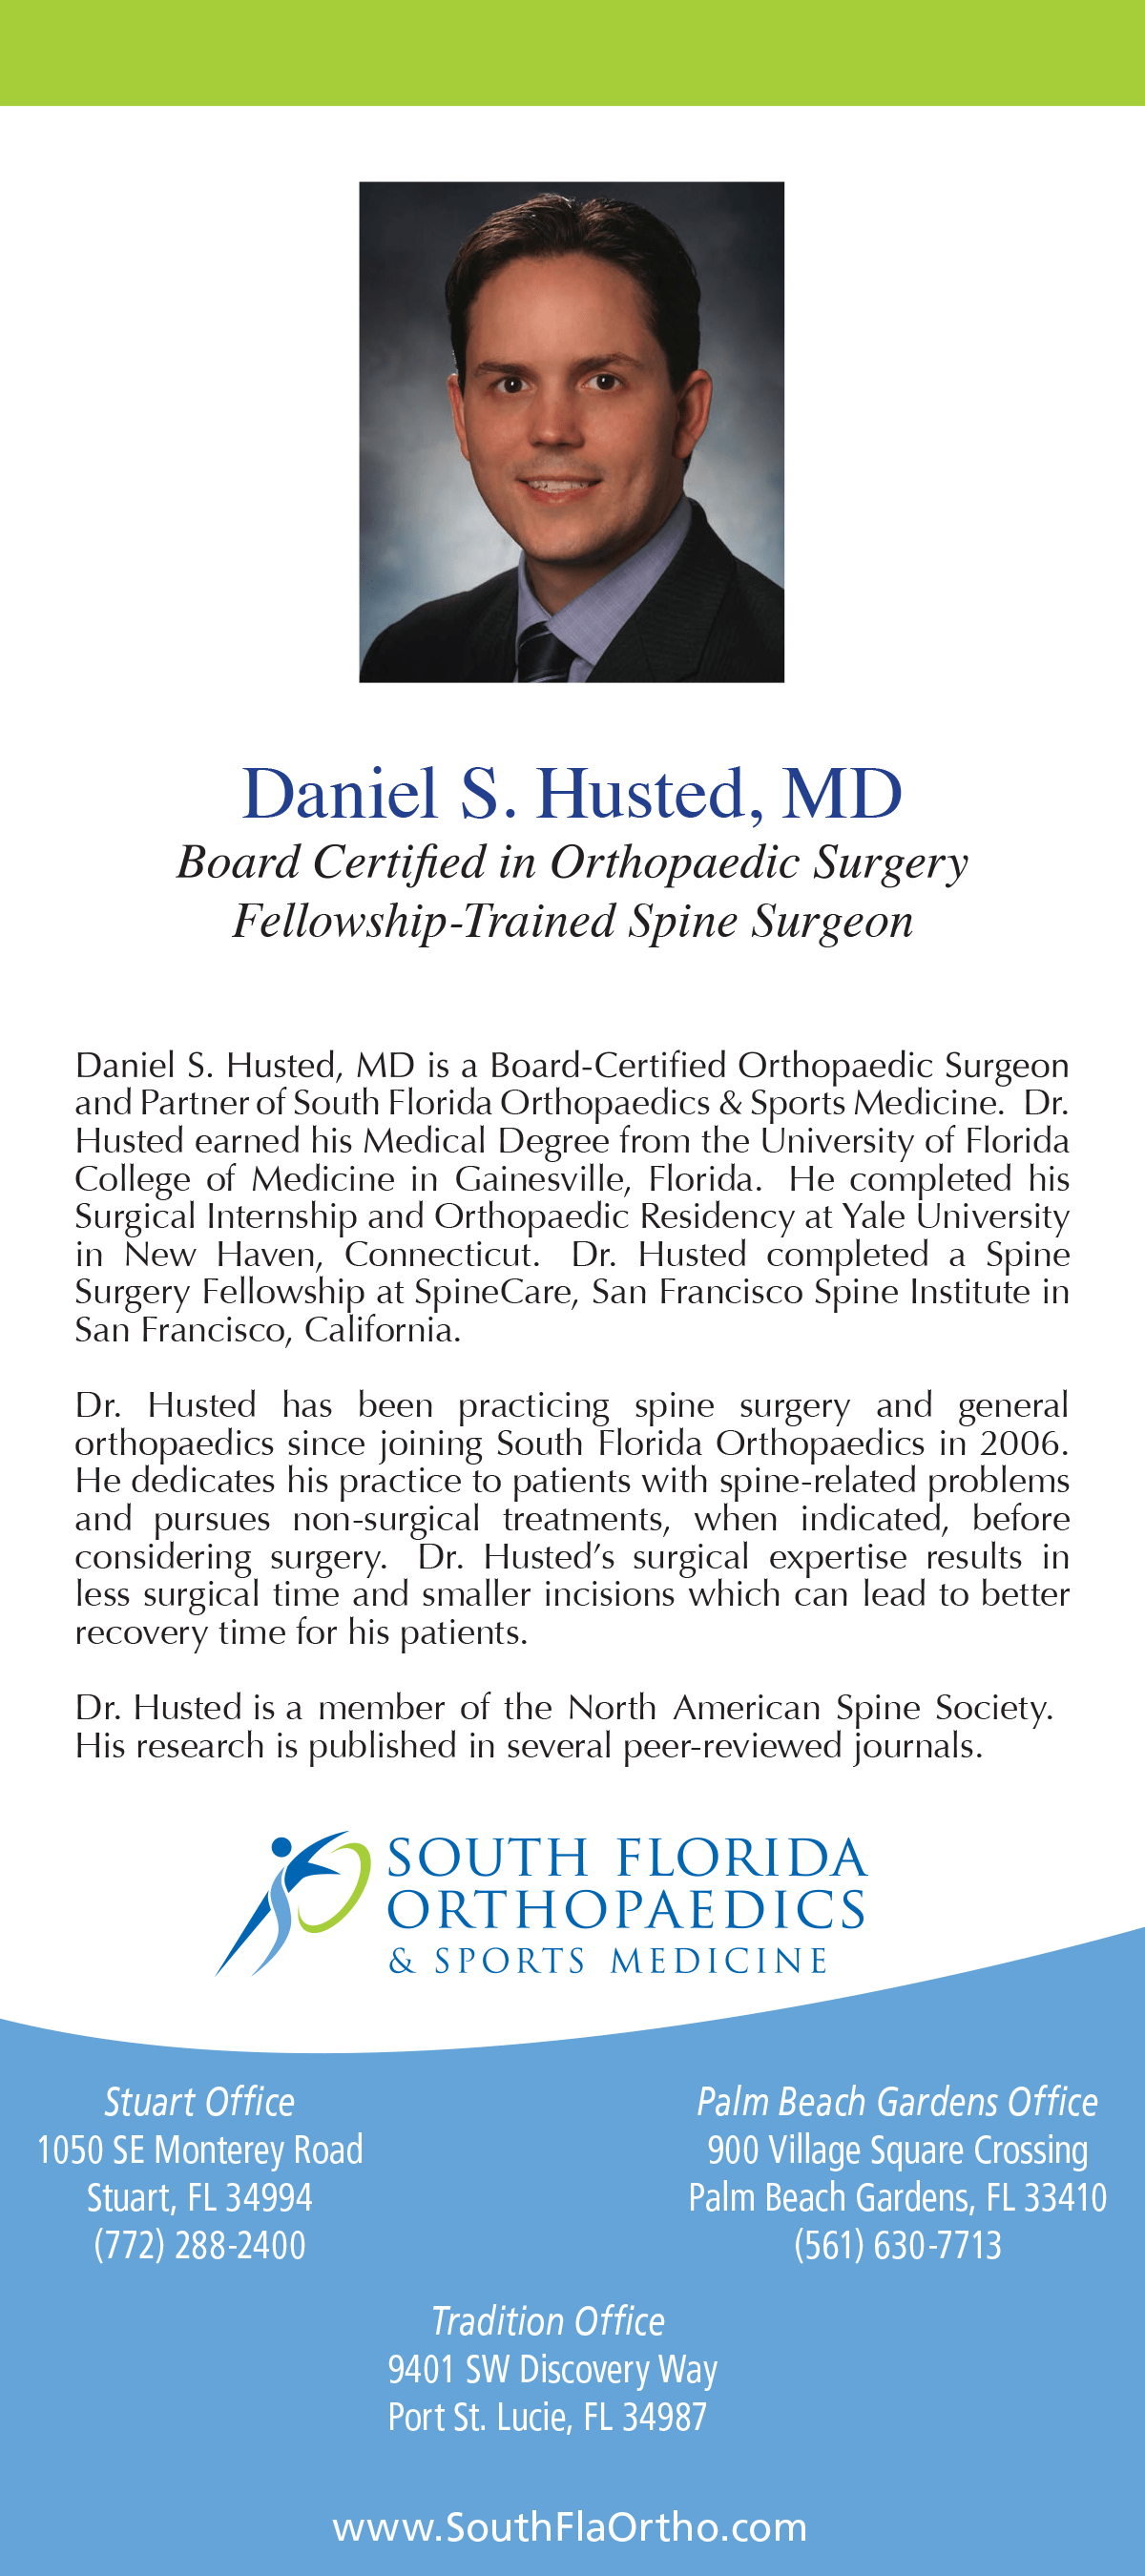 Daniel S Husted Md South Florida Orthopaedics Amp Sports